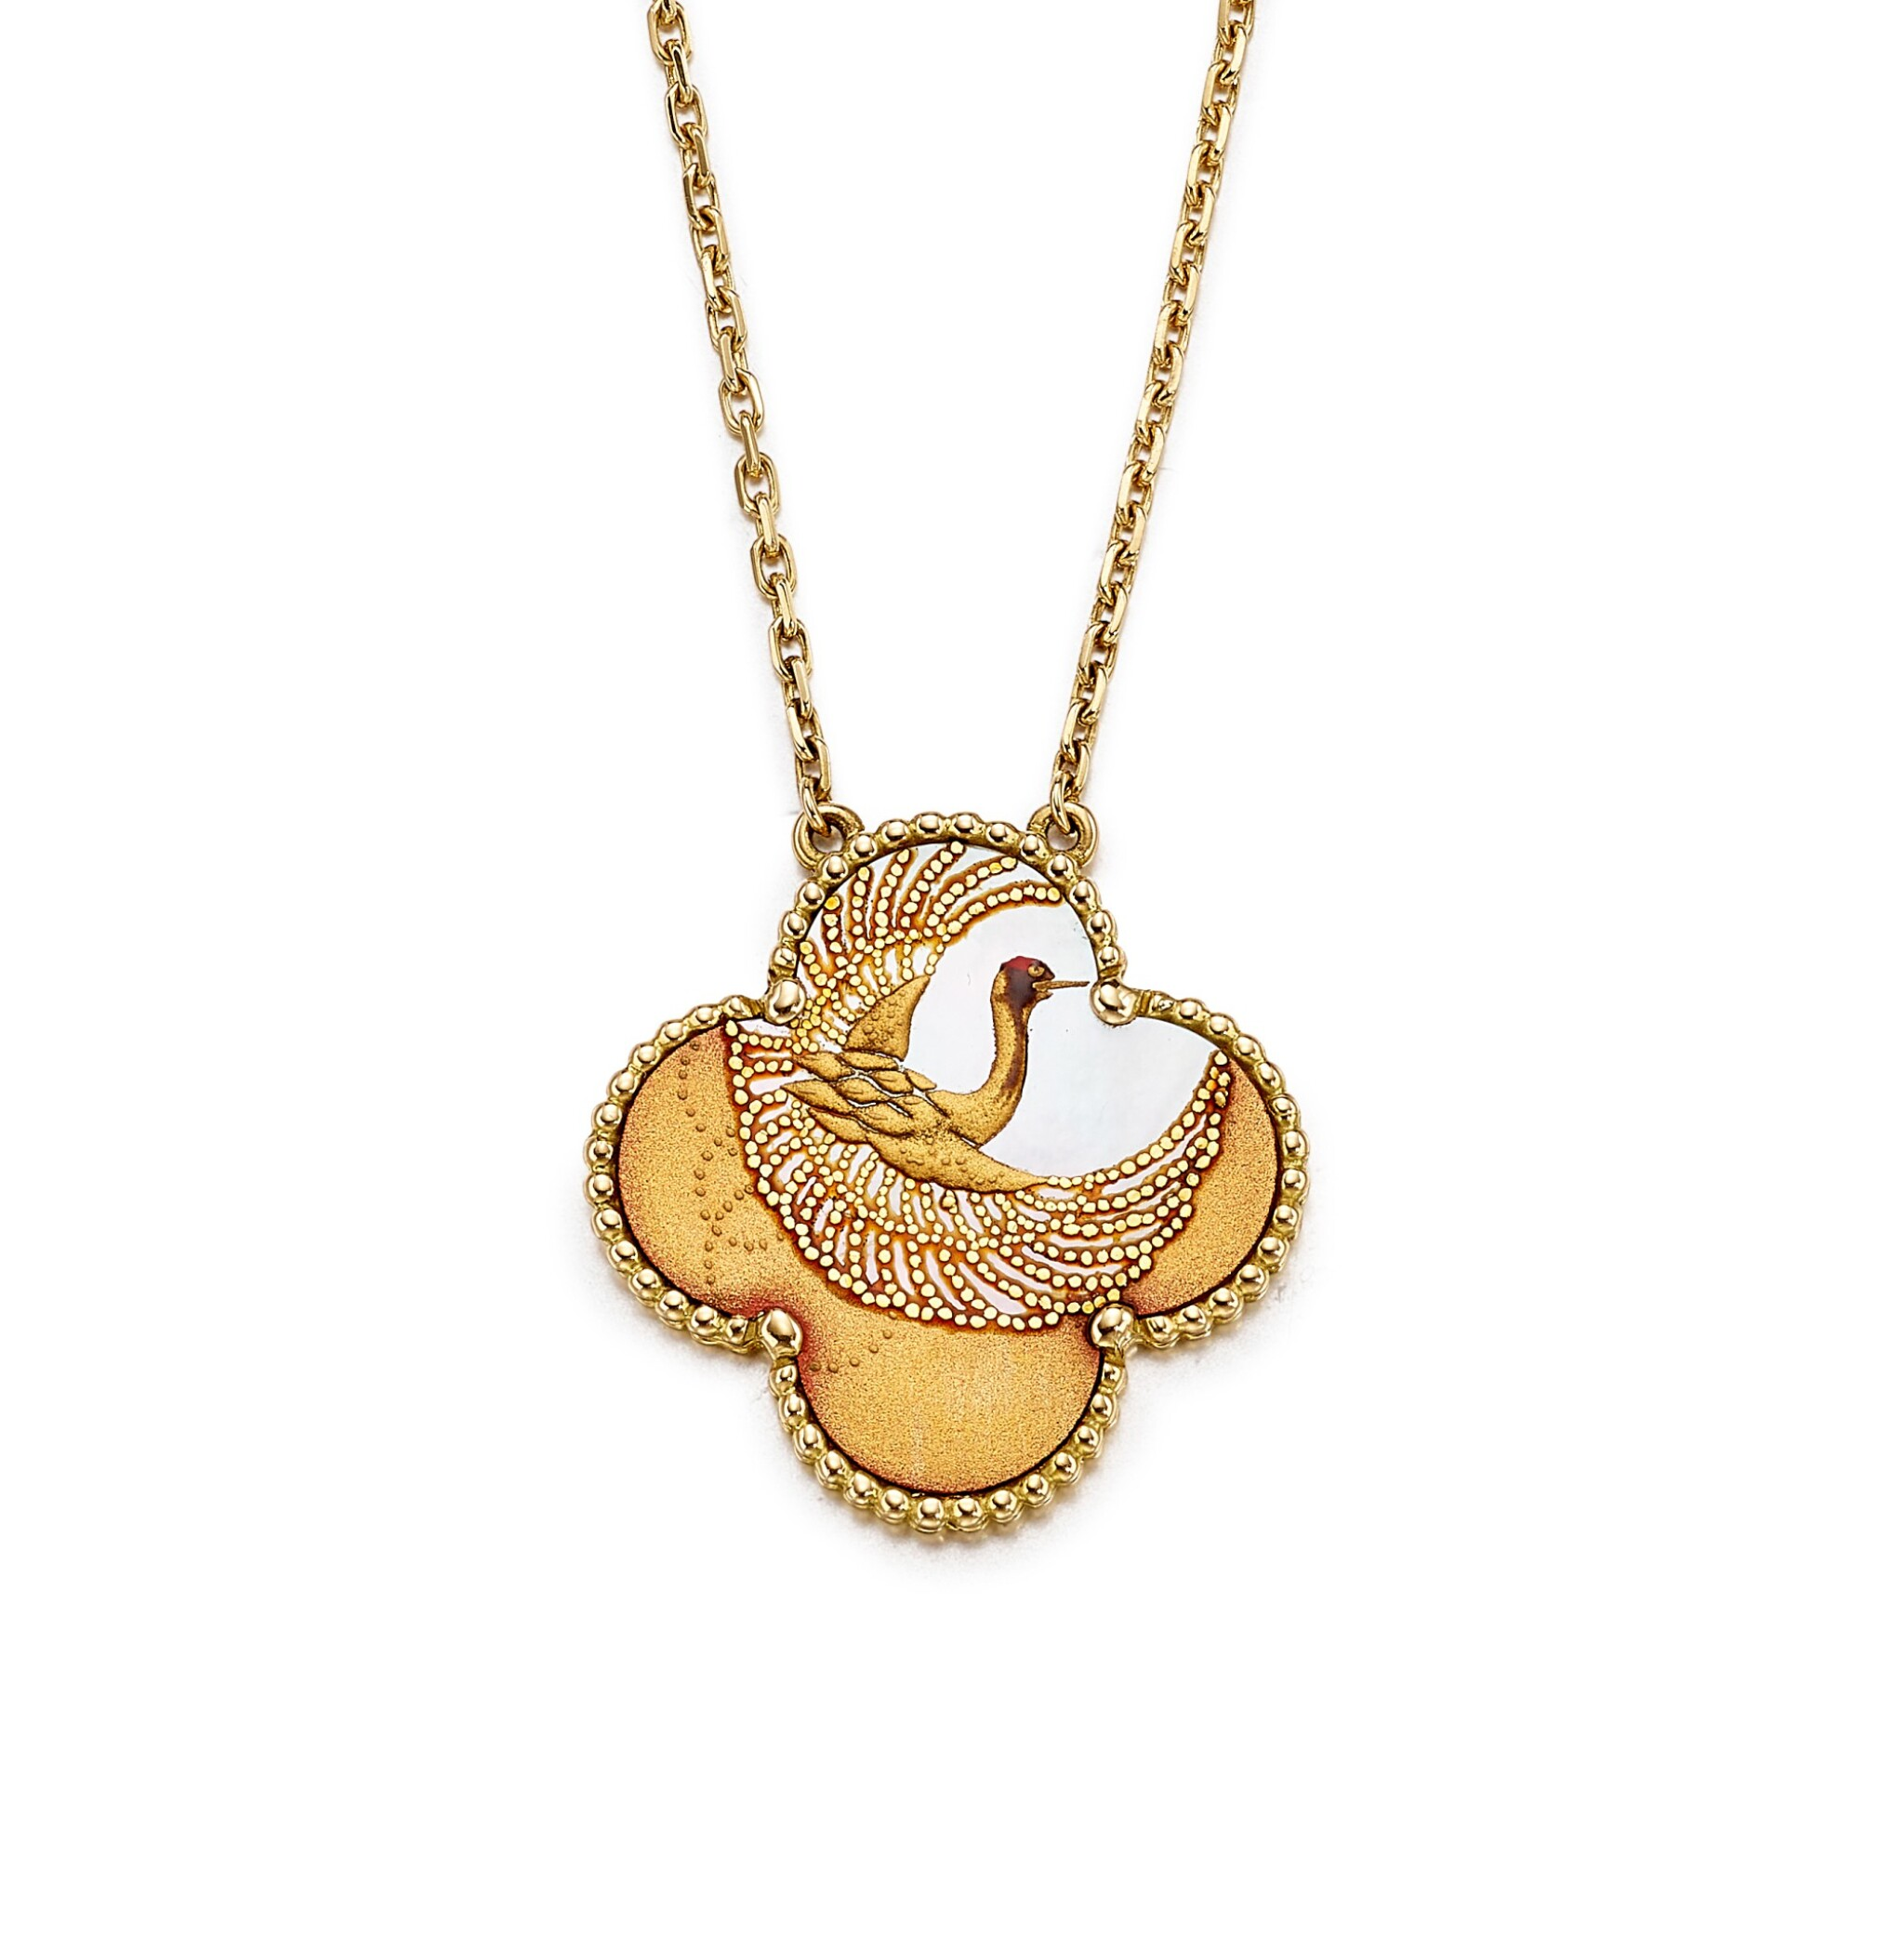 View full screen - View 1 of Lot 1697. Limited Edition 'Alhambra' Mother-of-Pearl and Lacquer Pendent Necklace  梵克雅寶   'Alhambra' 限量版貝母 配 蒔繪 項鏈.